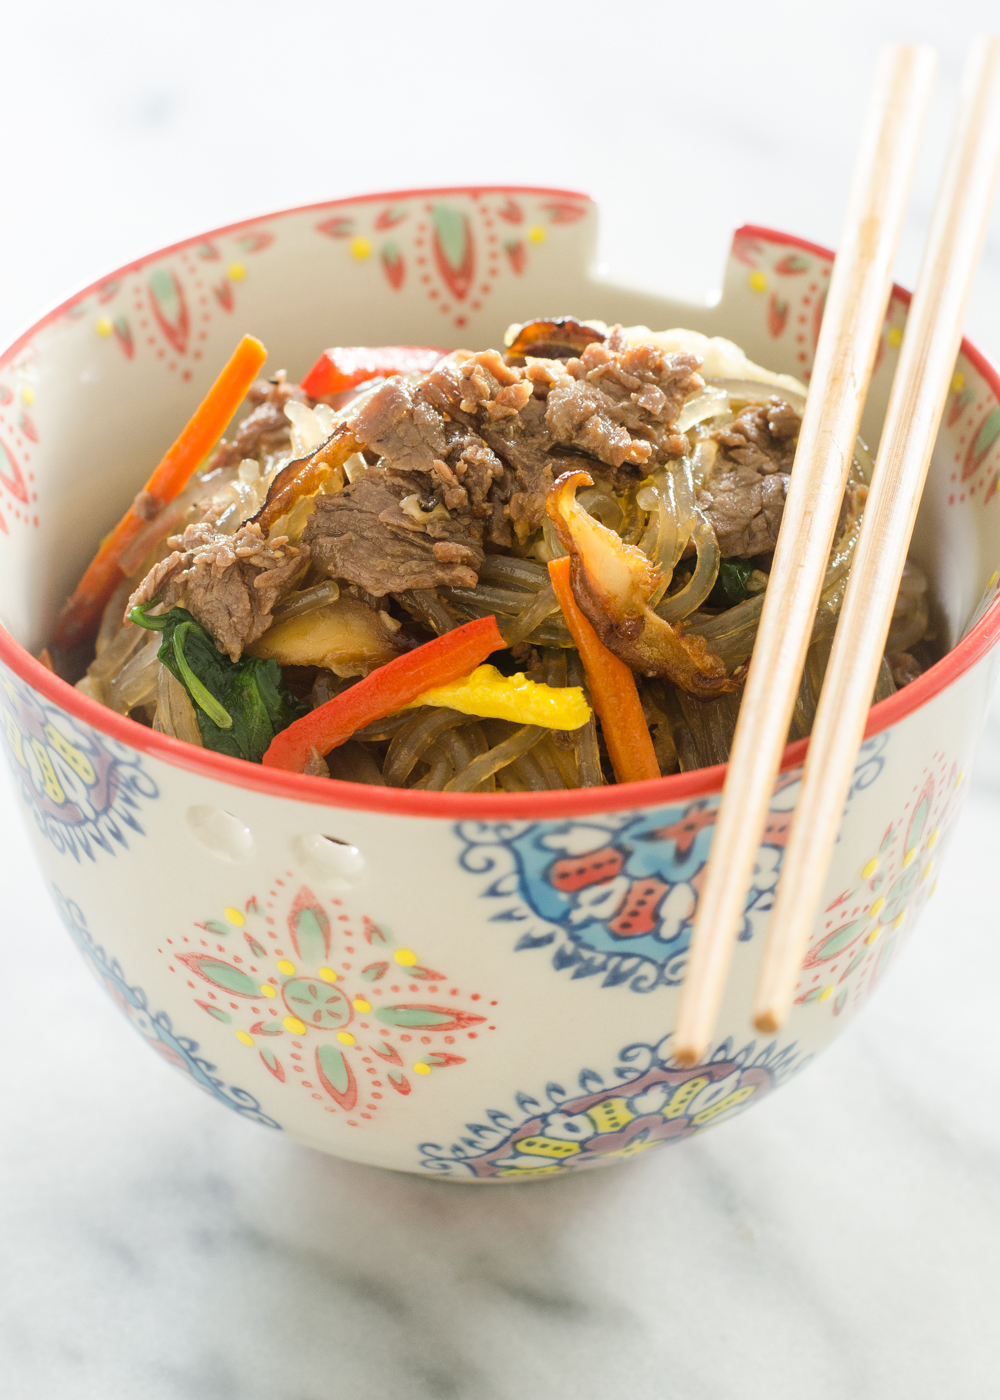 Butcher Box Review Meal 1 - Japchae